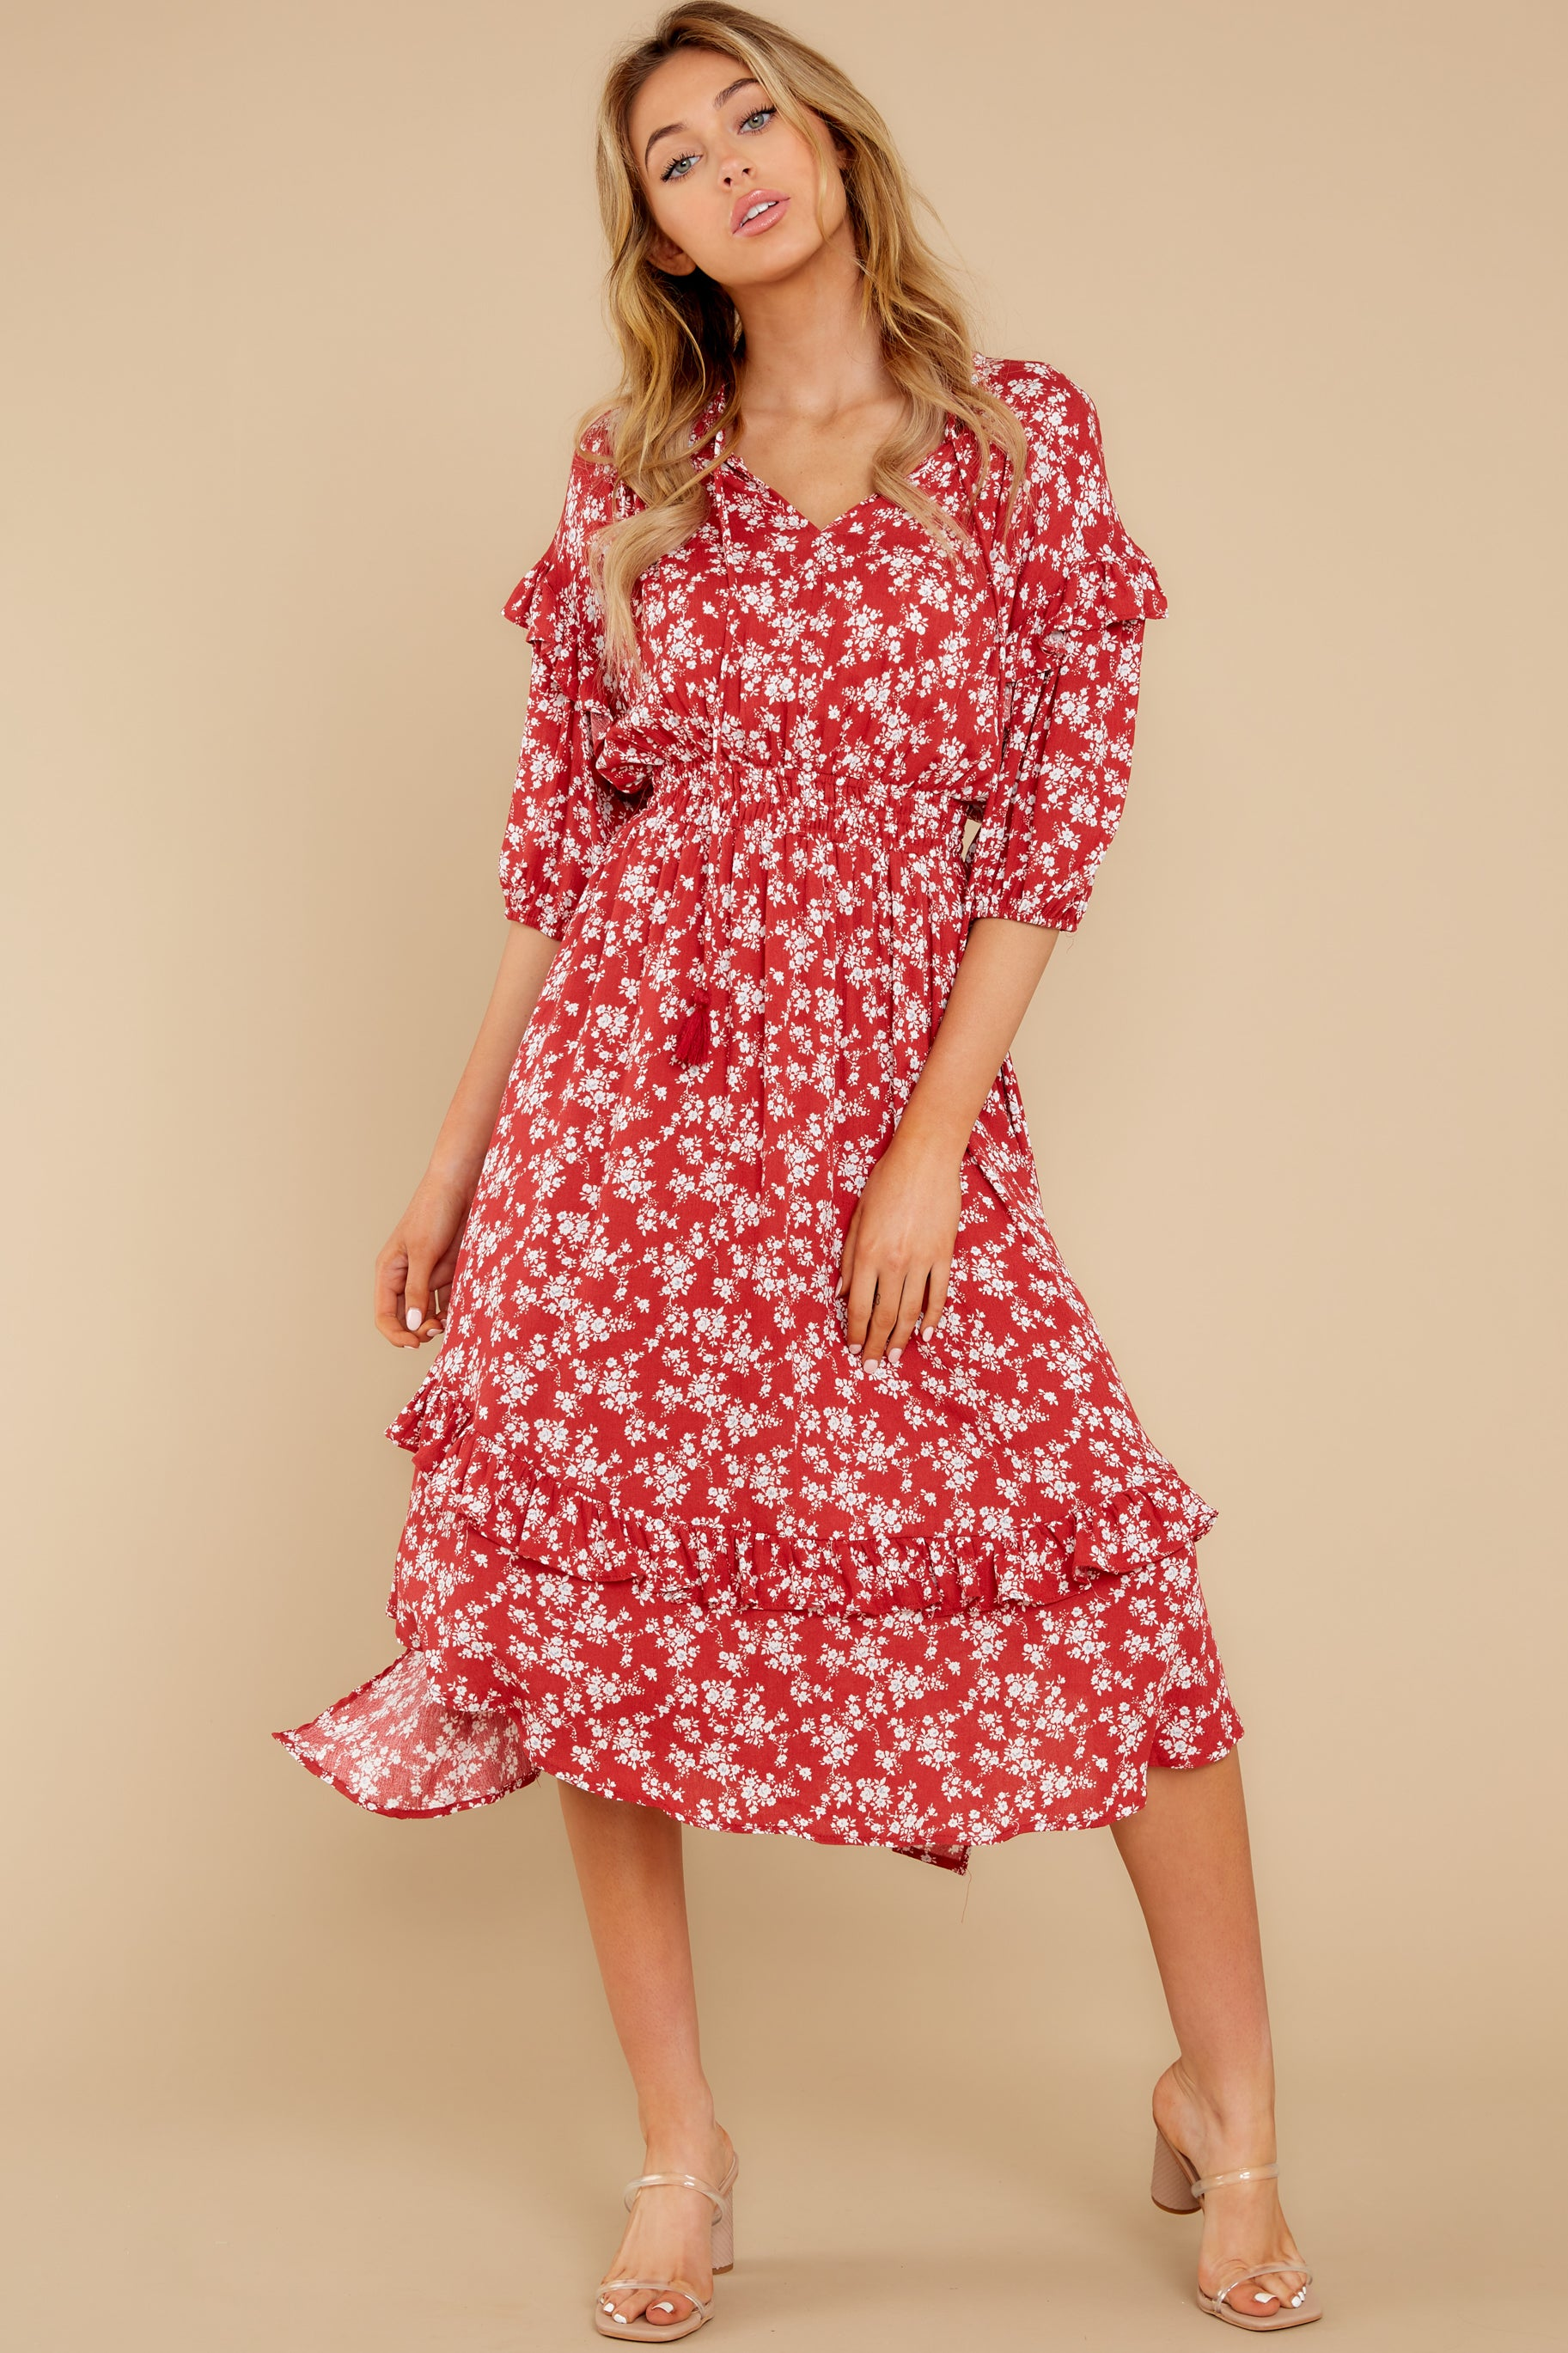 5 Make It Graceful Red Floral Print Dress at reddress.com